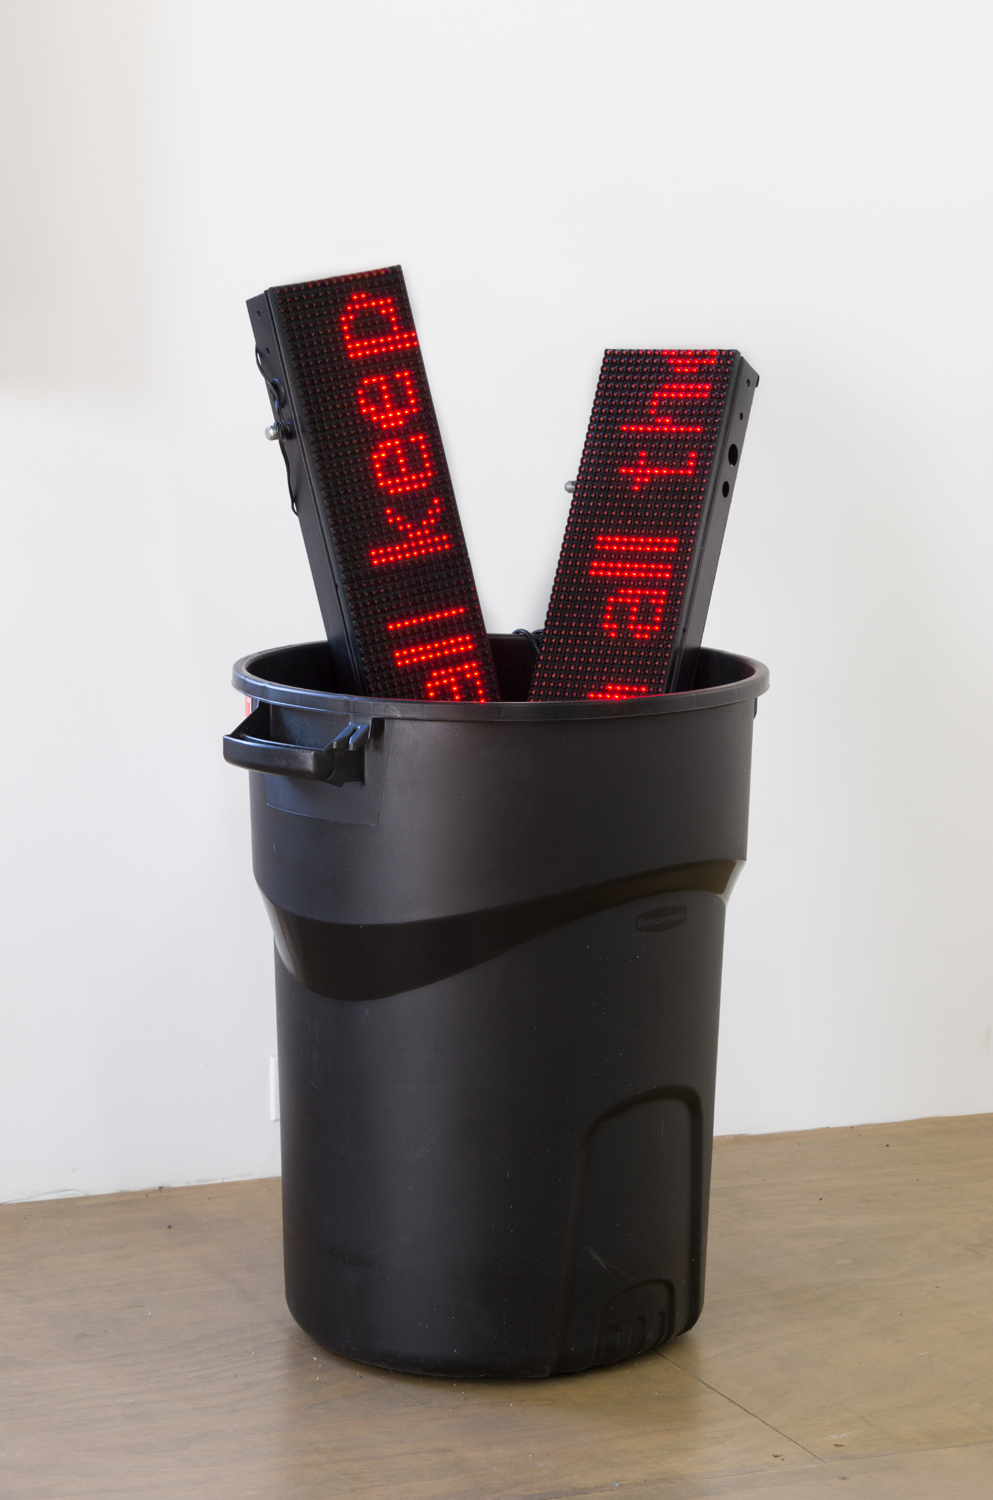 I love him who keeps back no drop of spirit for himself (Kanye Stream)  , 2017 Red LED banners, plastic trashcan, moving blanket 25 x 26 x 44 inches 63.5 x 66 x 111.8 cm